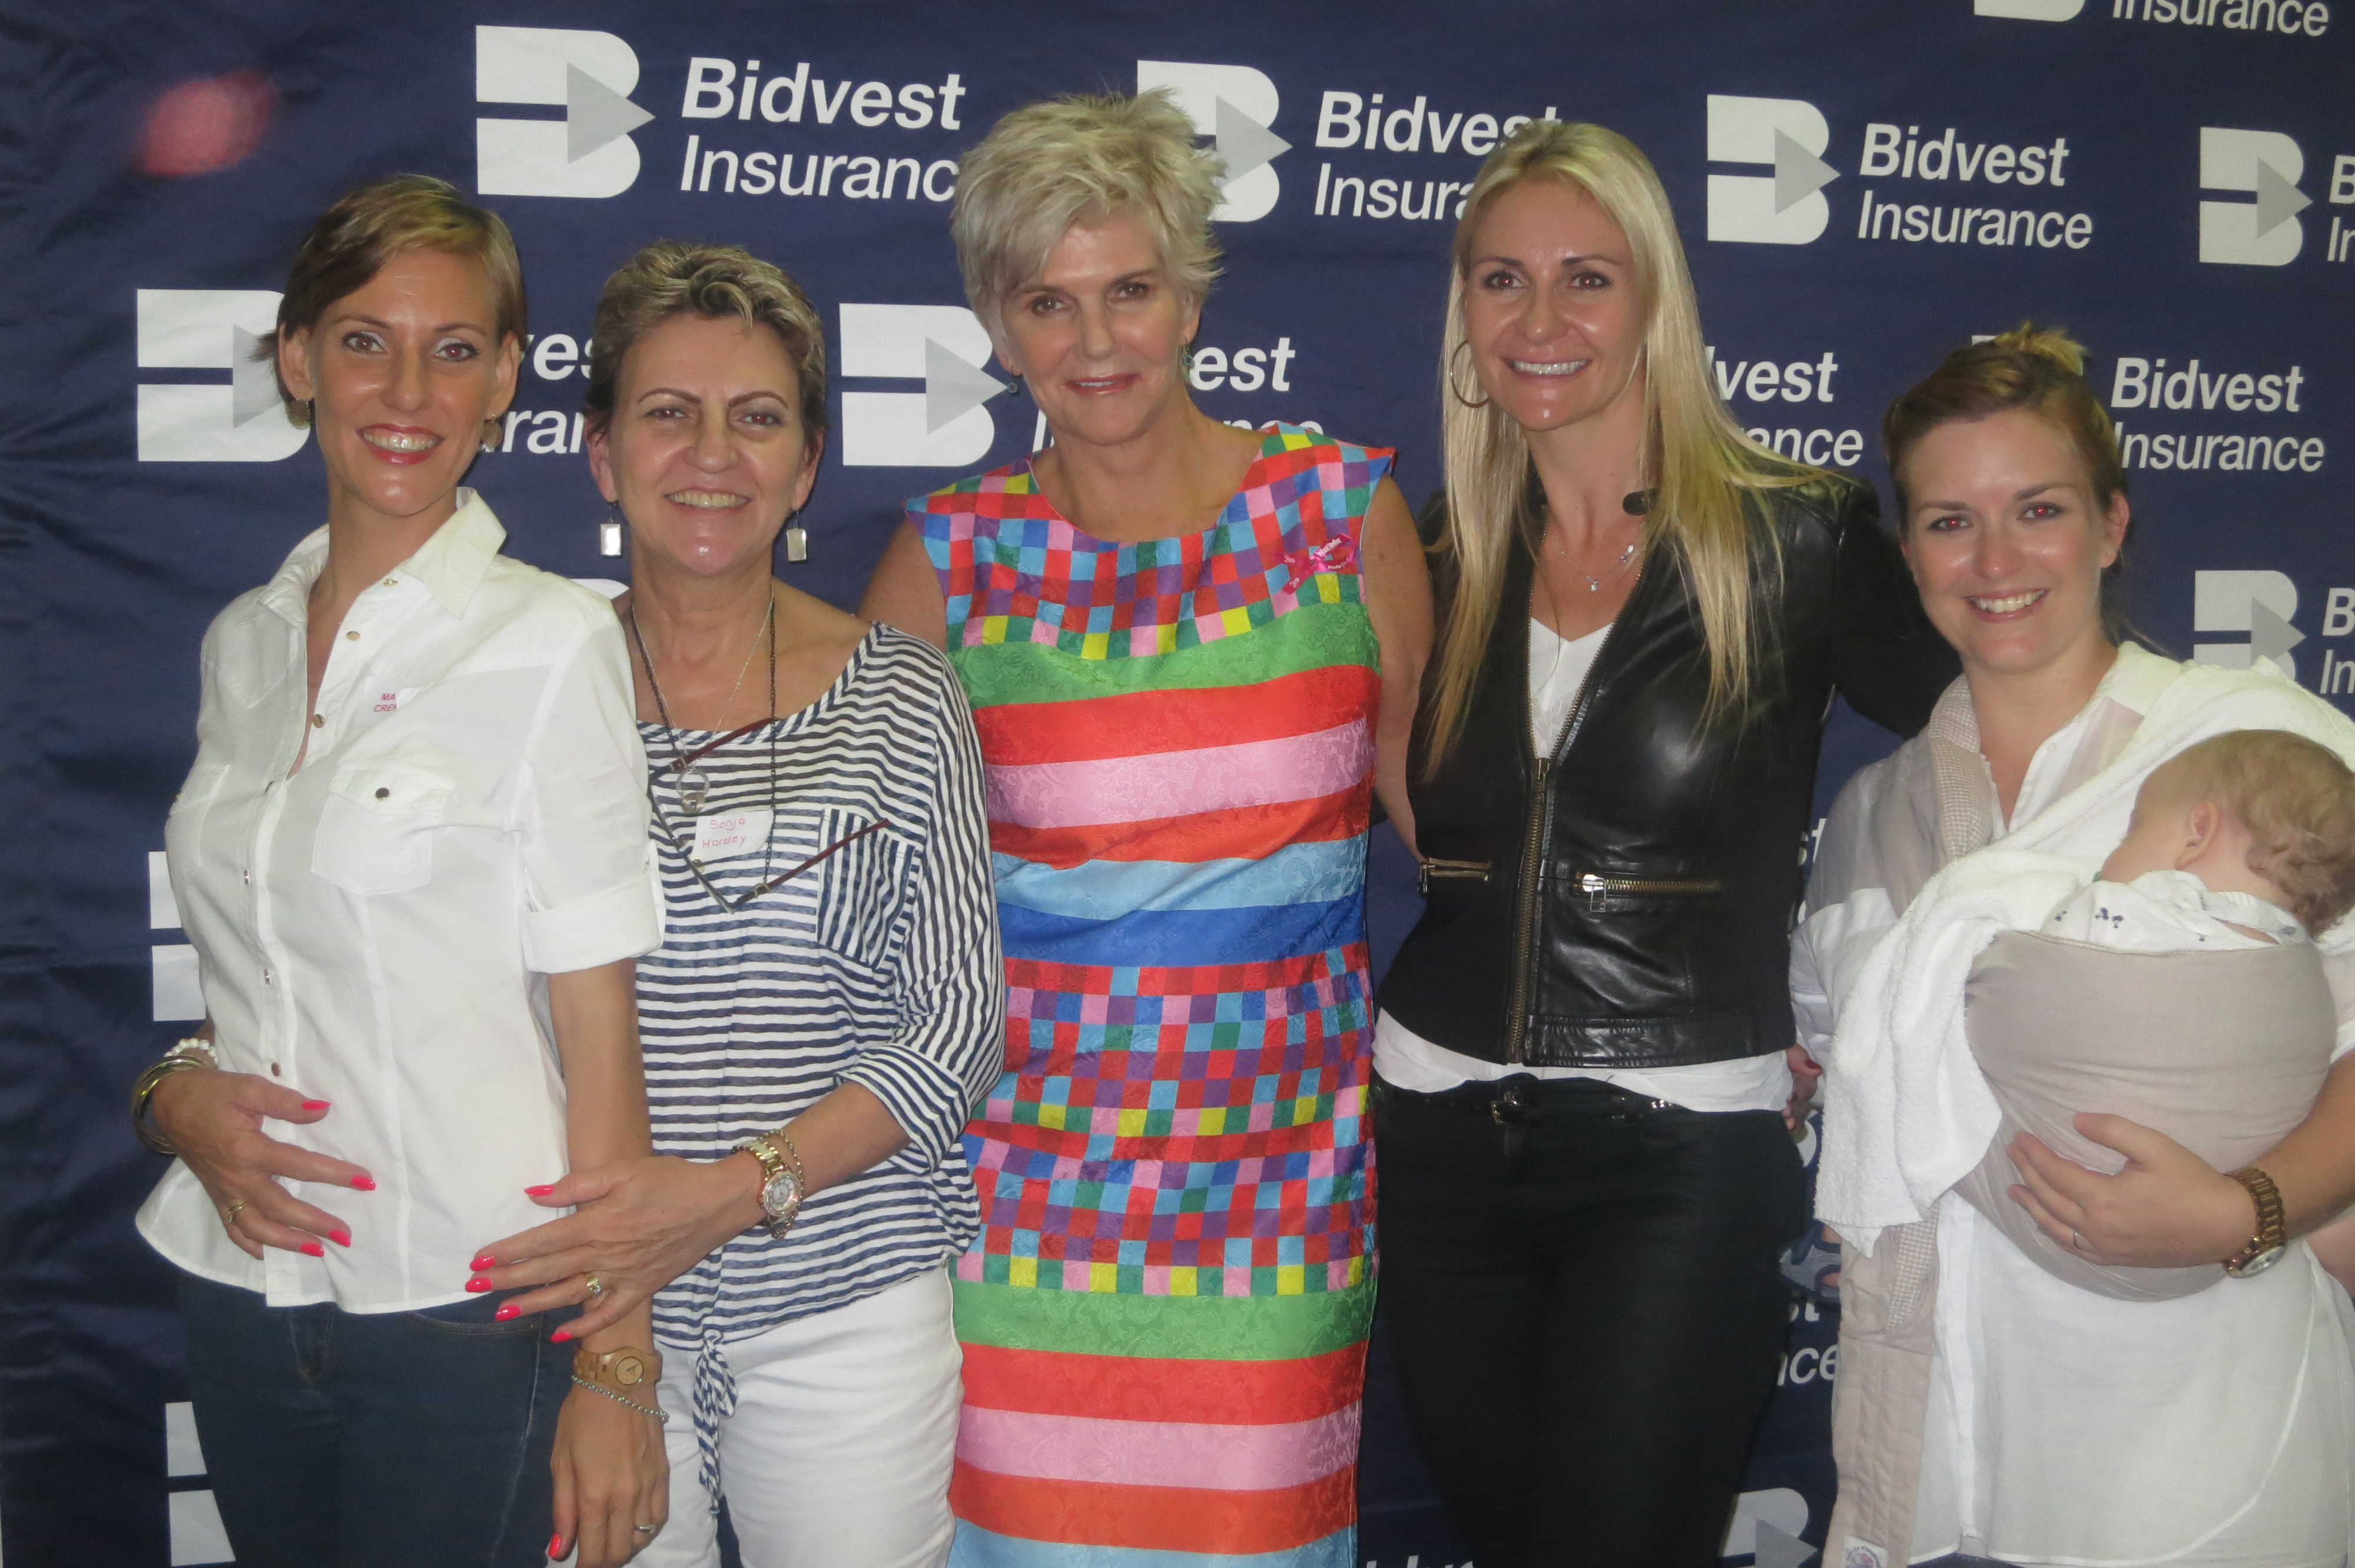 Mandy Cremer, Sonja Hartley, PJ-Powers, Lize Blignaut and Ashleigh and Kingsley Hulley